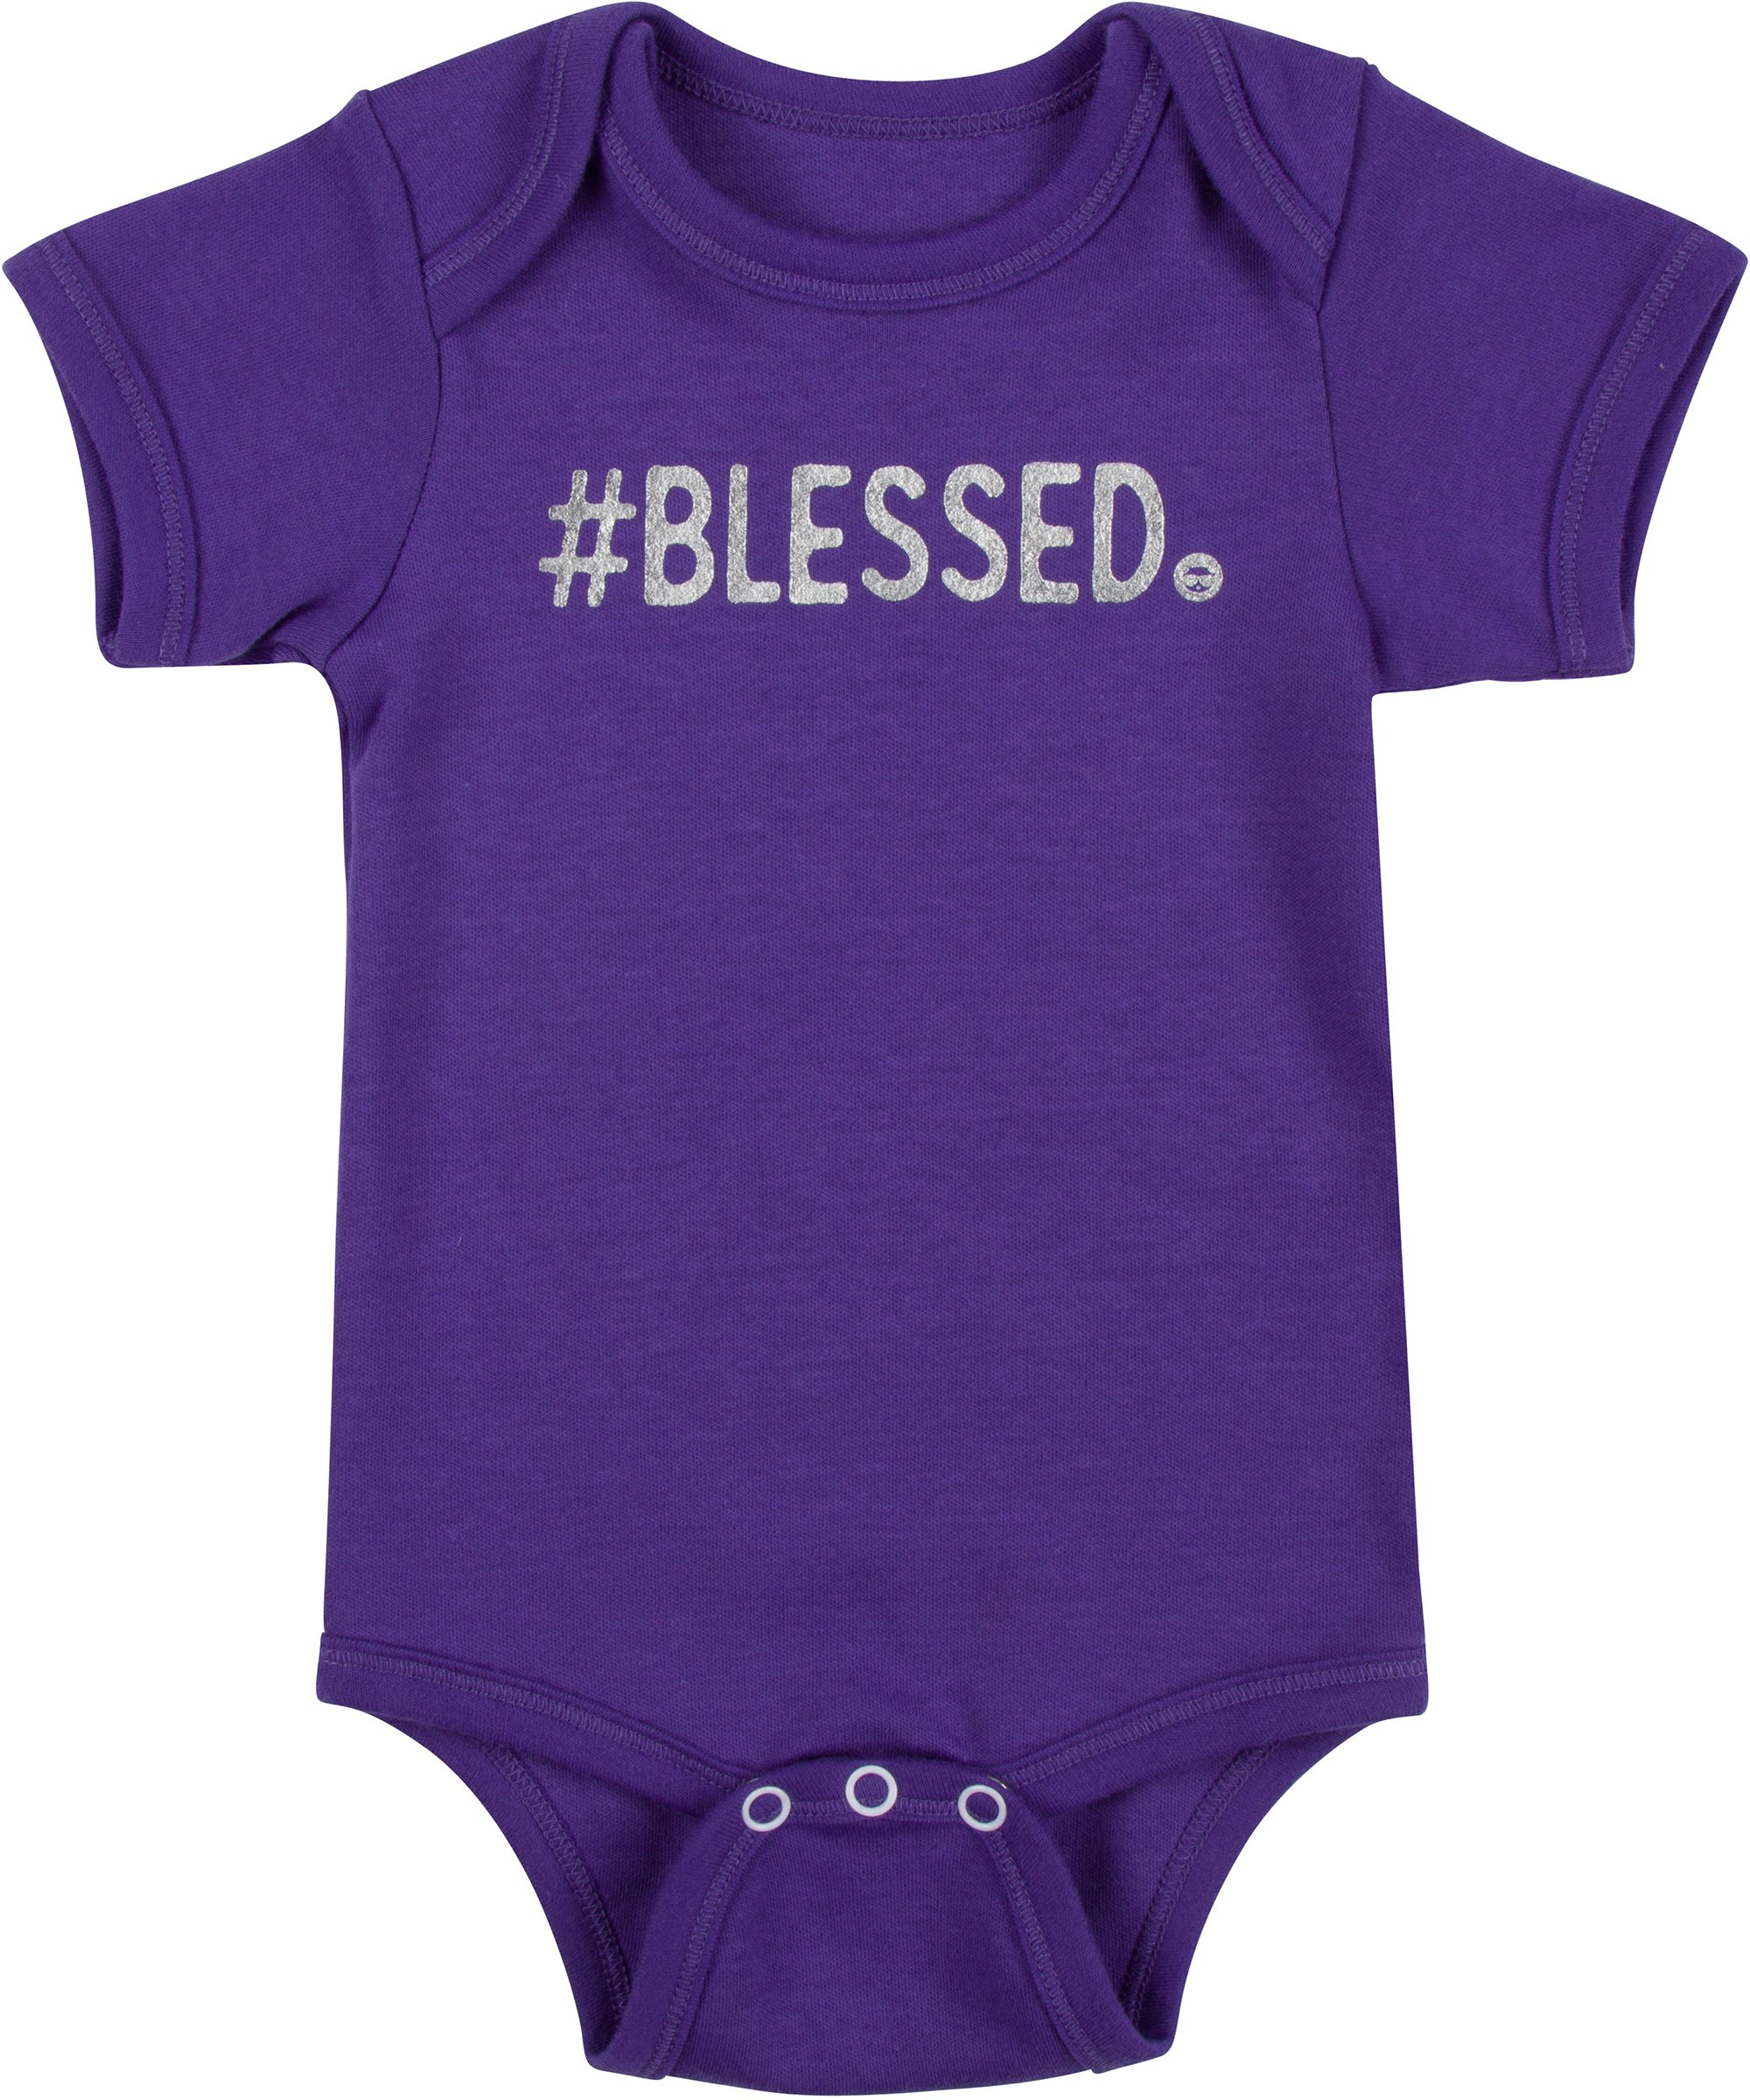 Fayfaire Baptism Gifts Christening Outfit: Boutique Quality #Blessed 6-12M